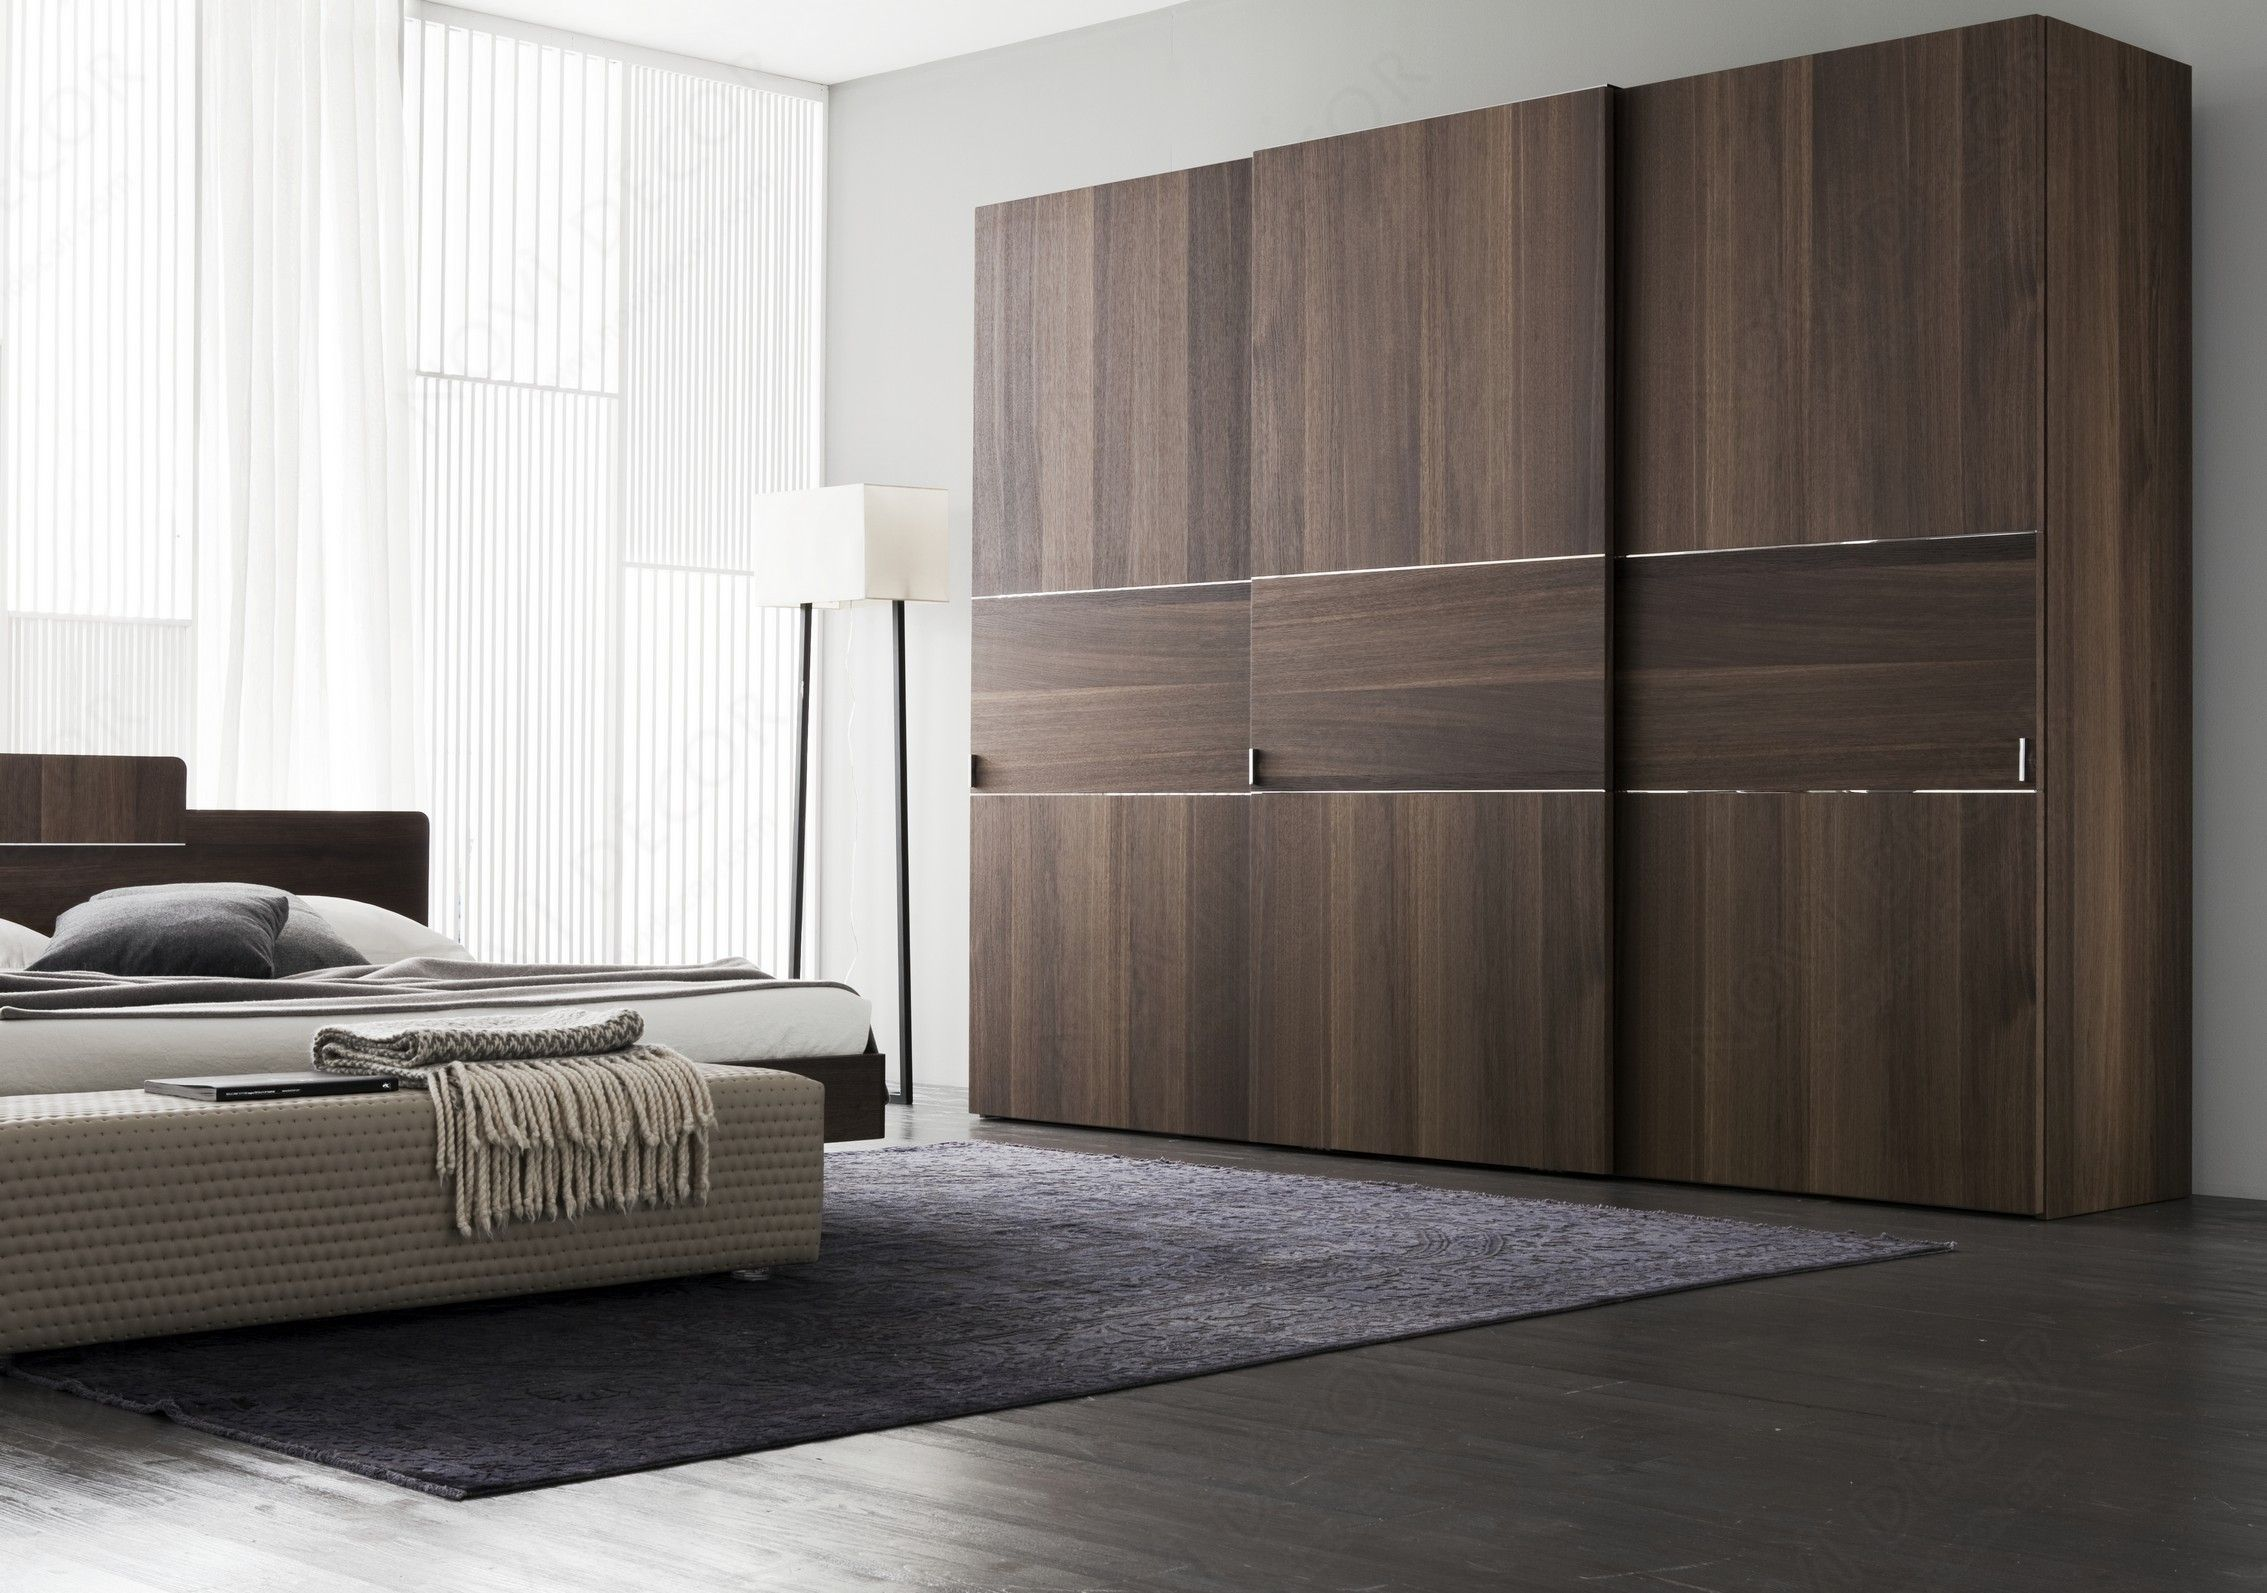 Sliding wardrobe doors as nice color combination furniture Nice bedroom furniture